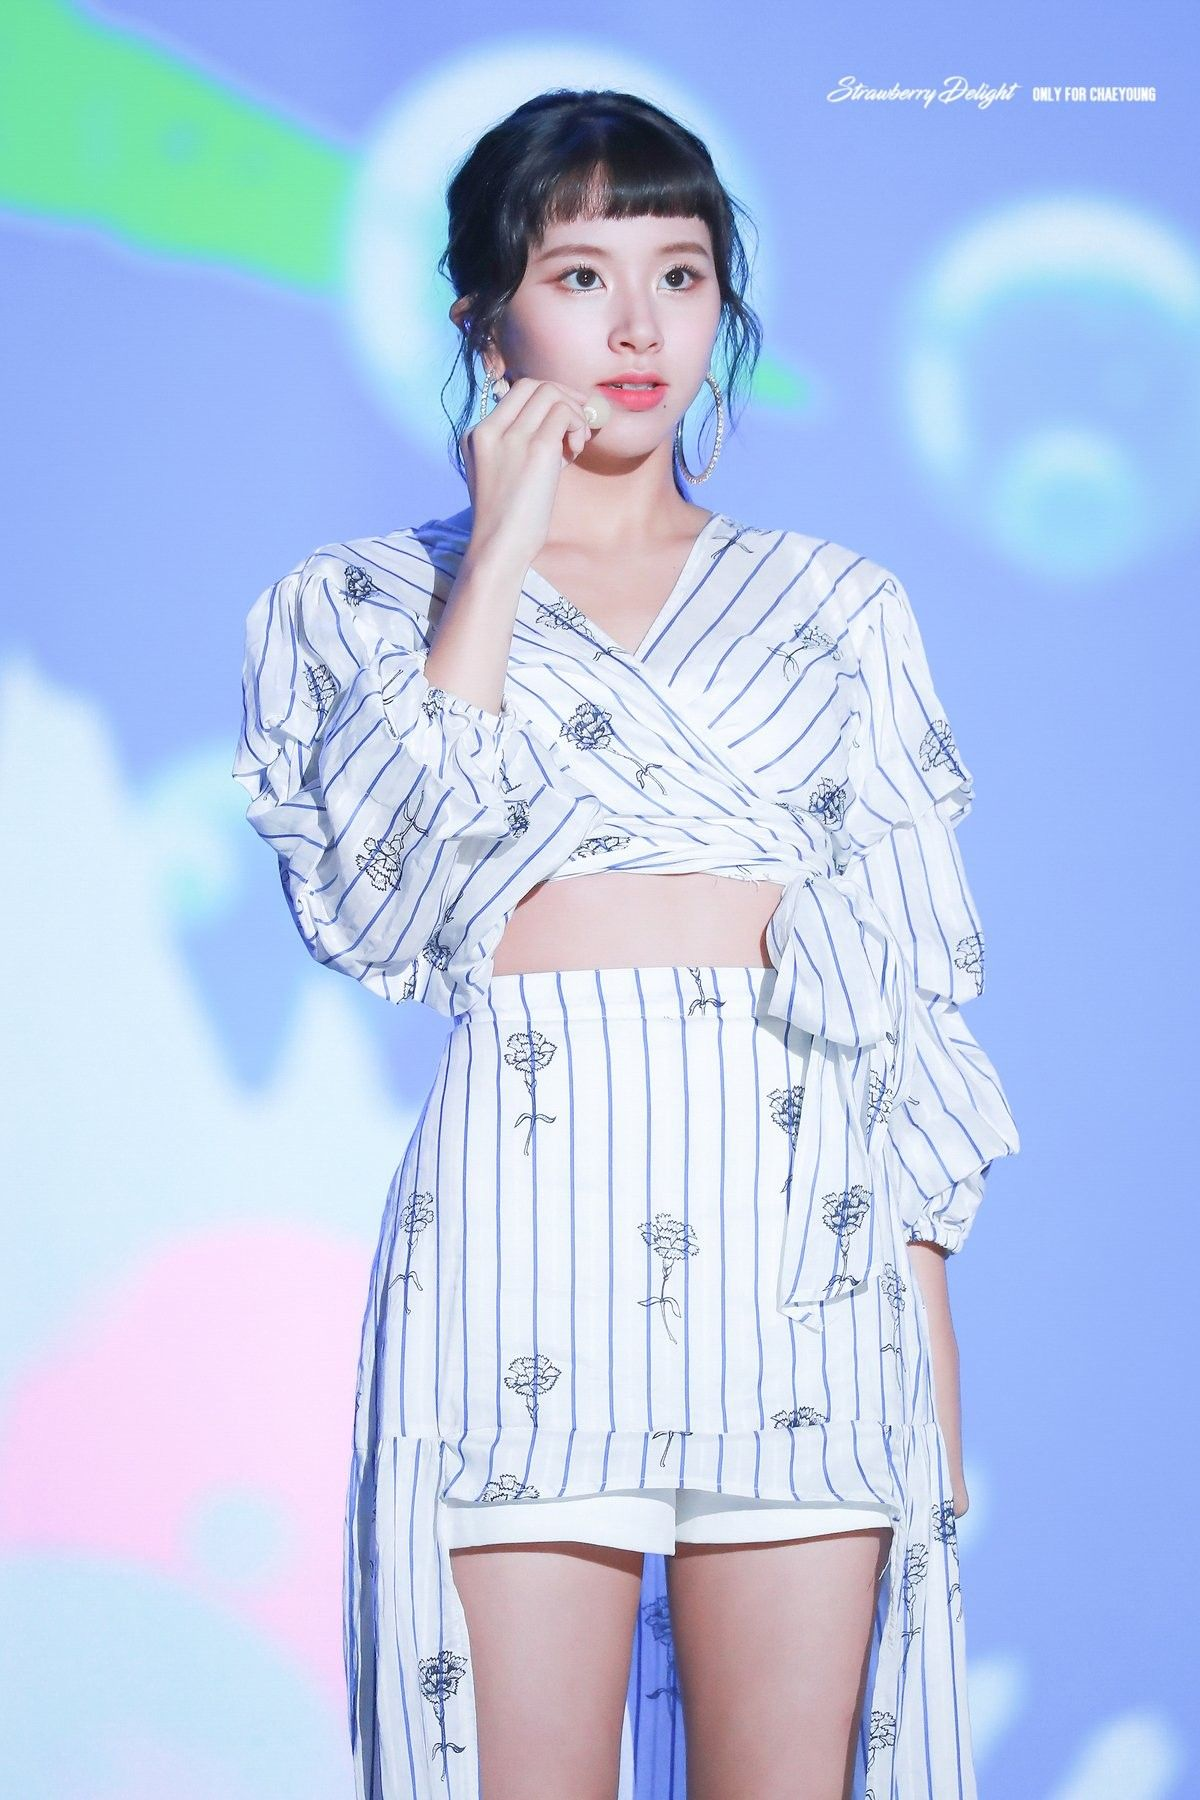 Twice Chaeyoung 180723 Ulsan Summer Festival Stage Outfits